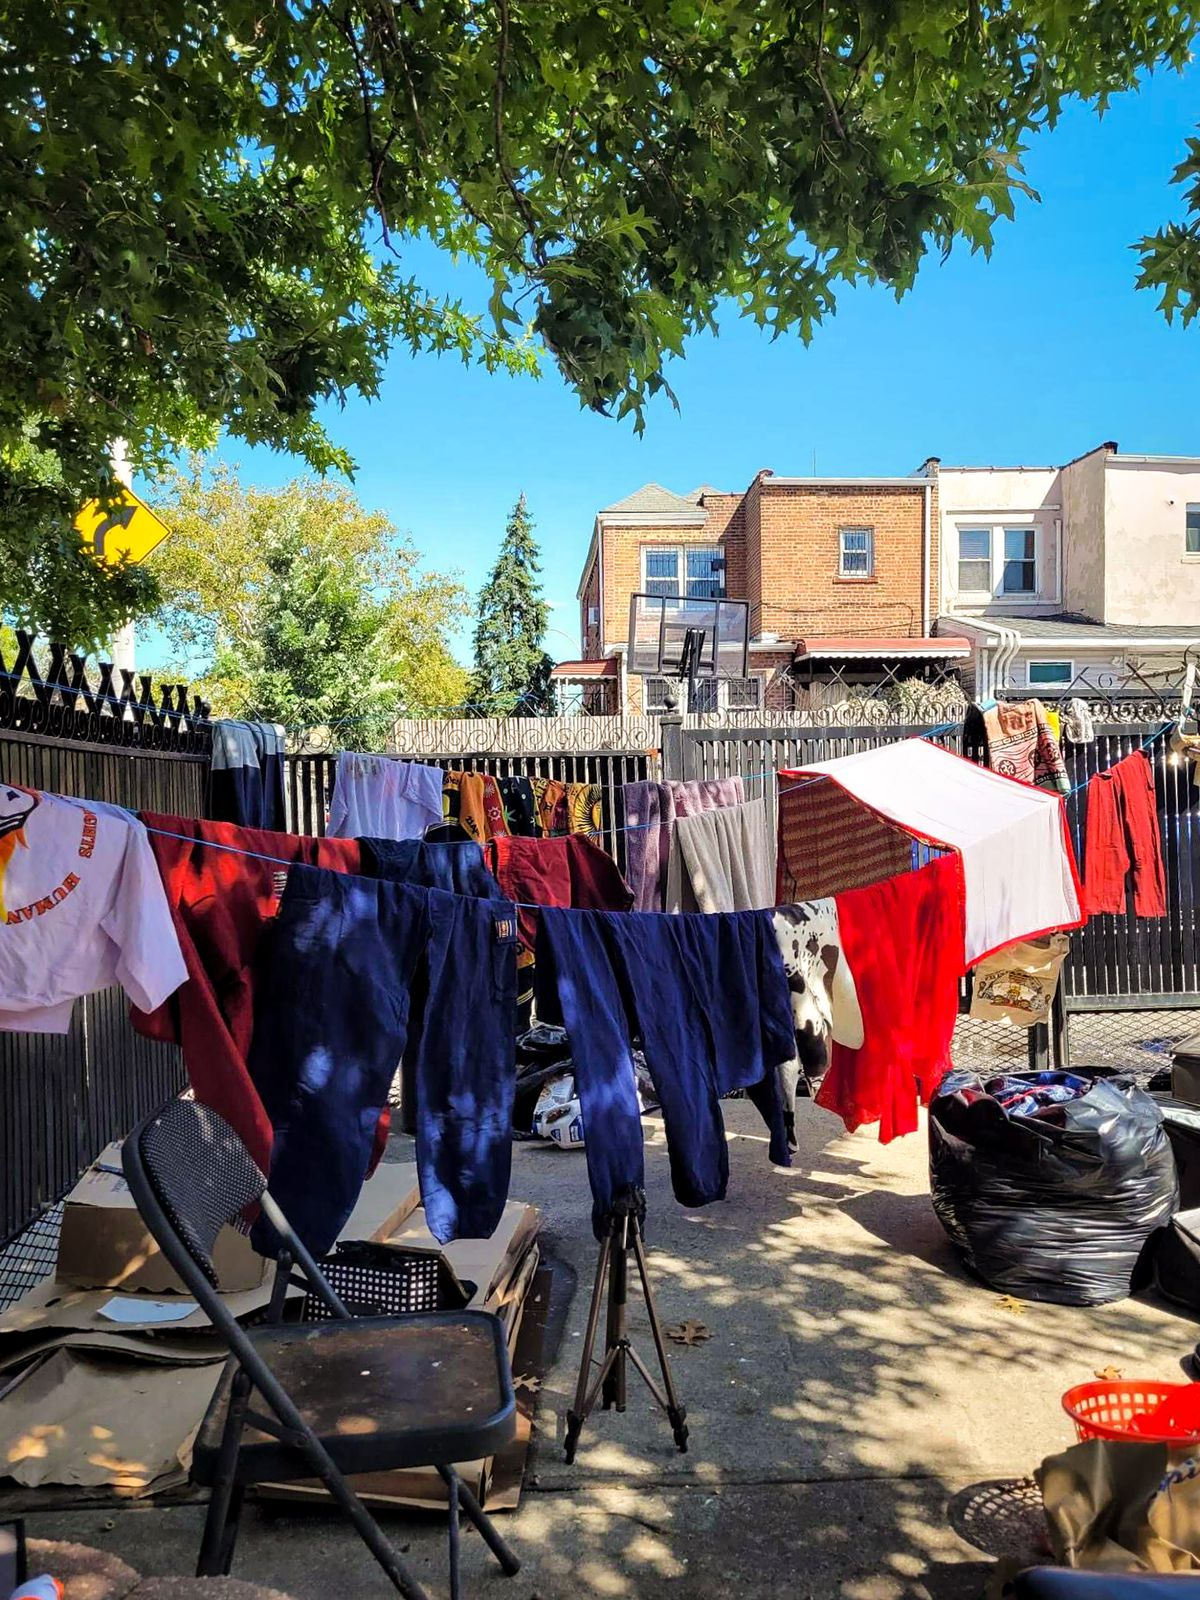 Jagpreet Singh's family and neighbors had to dry clothes, books and other belongings after their basements flooded in East Elmhurst, Queens. Sept. 2, 2021.